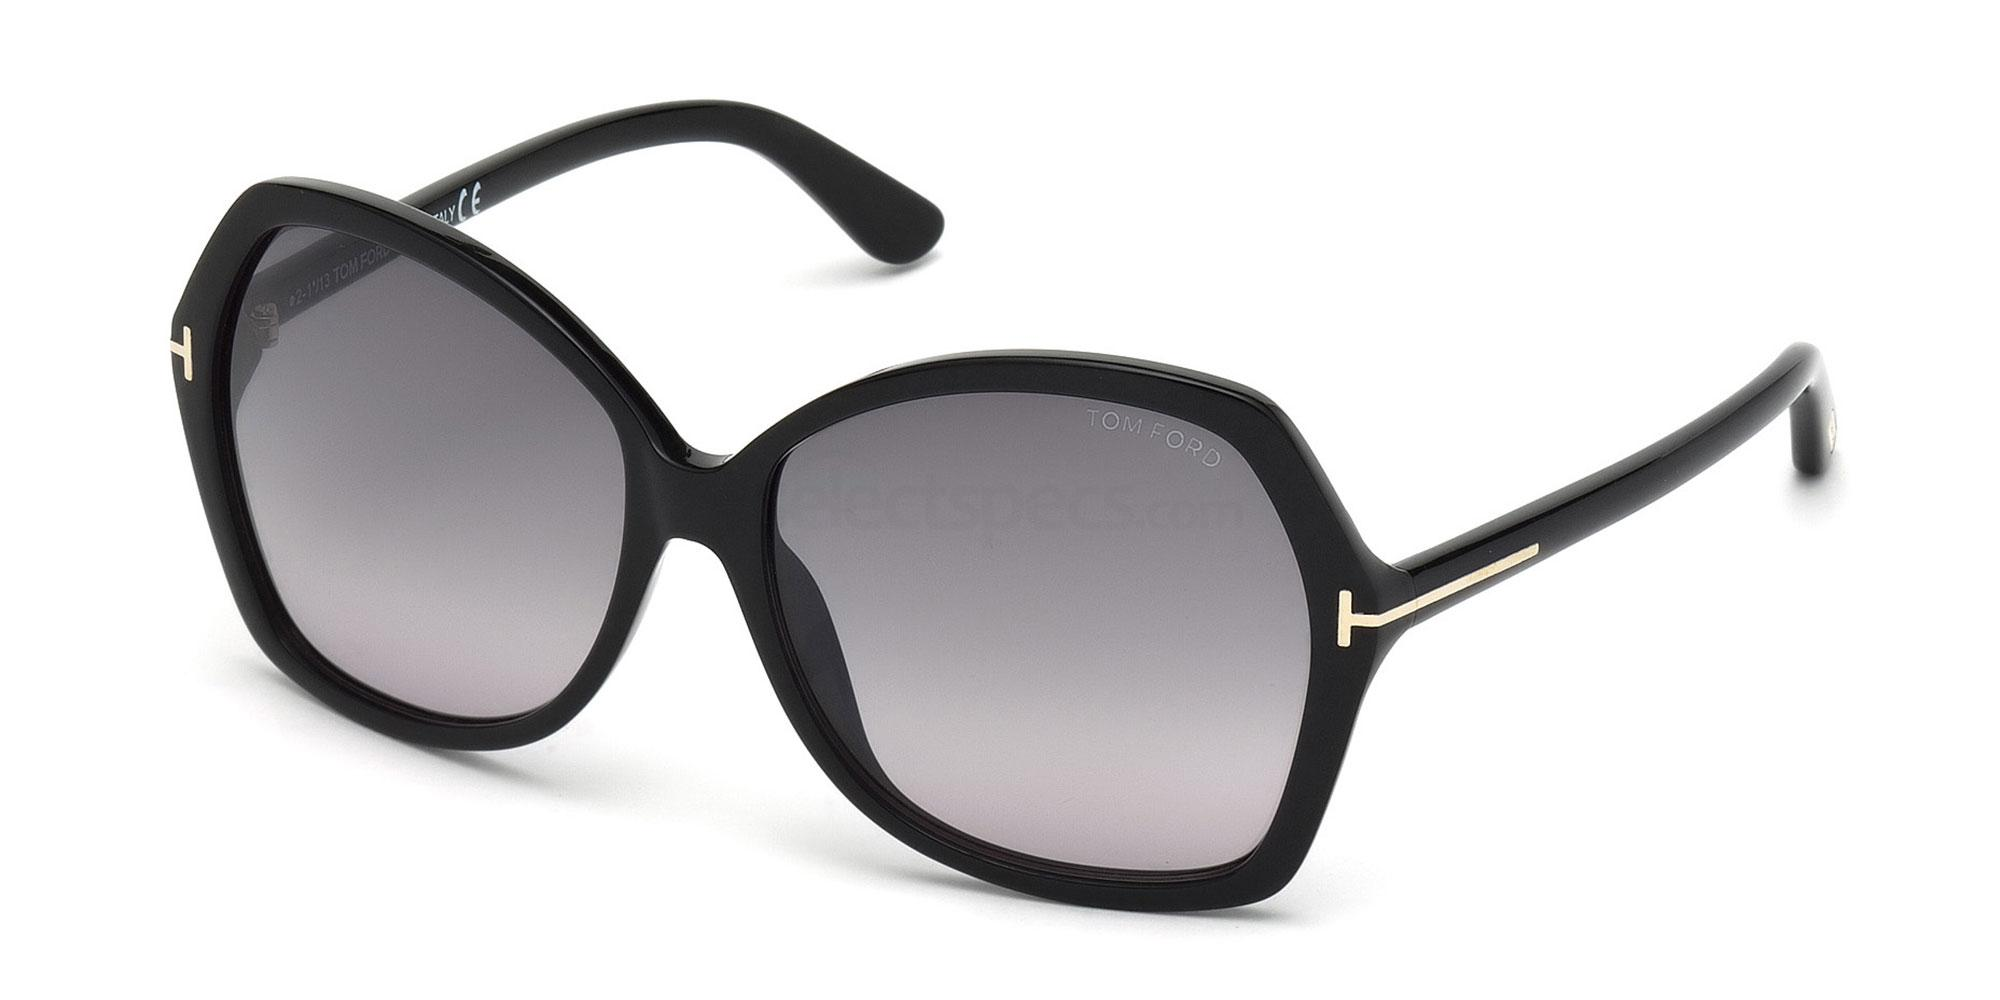 01B FT0328 CAROLA Sunglasses, Tom Ford